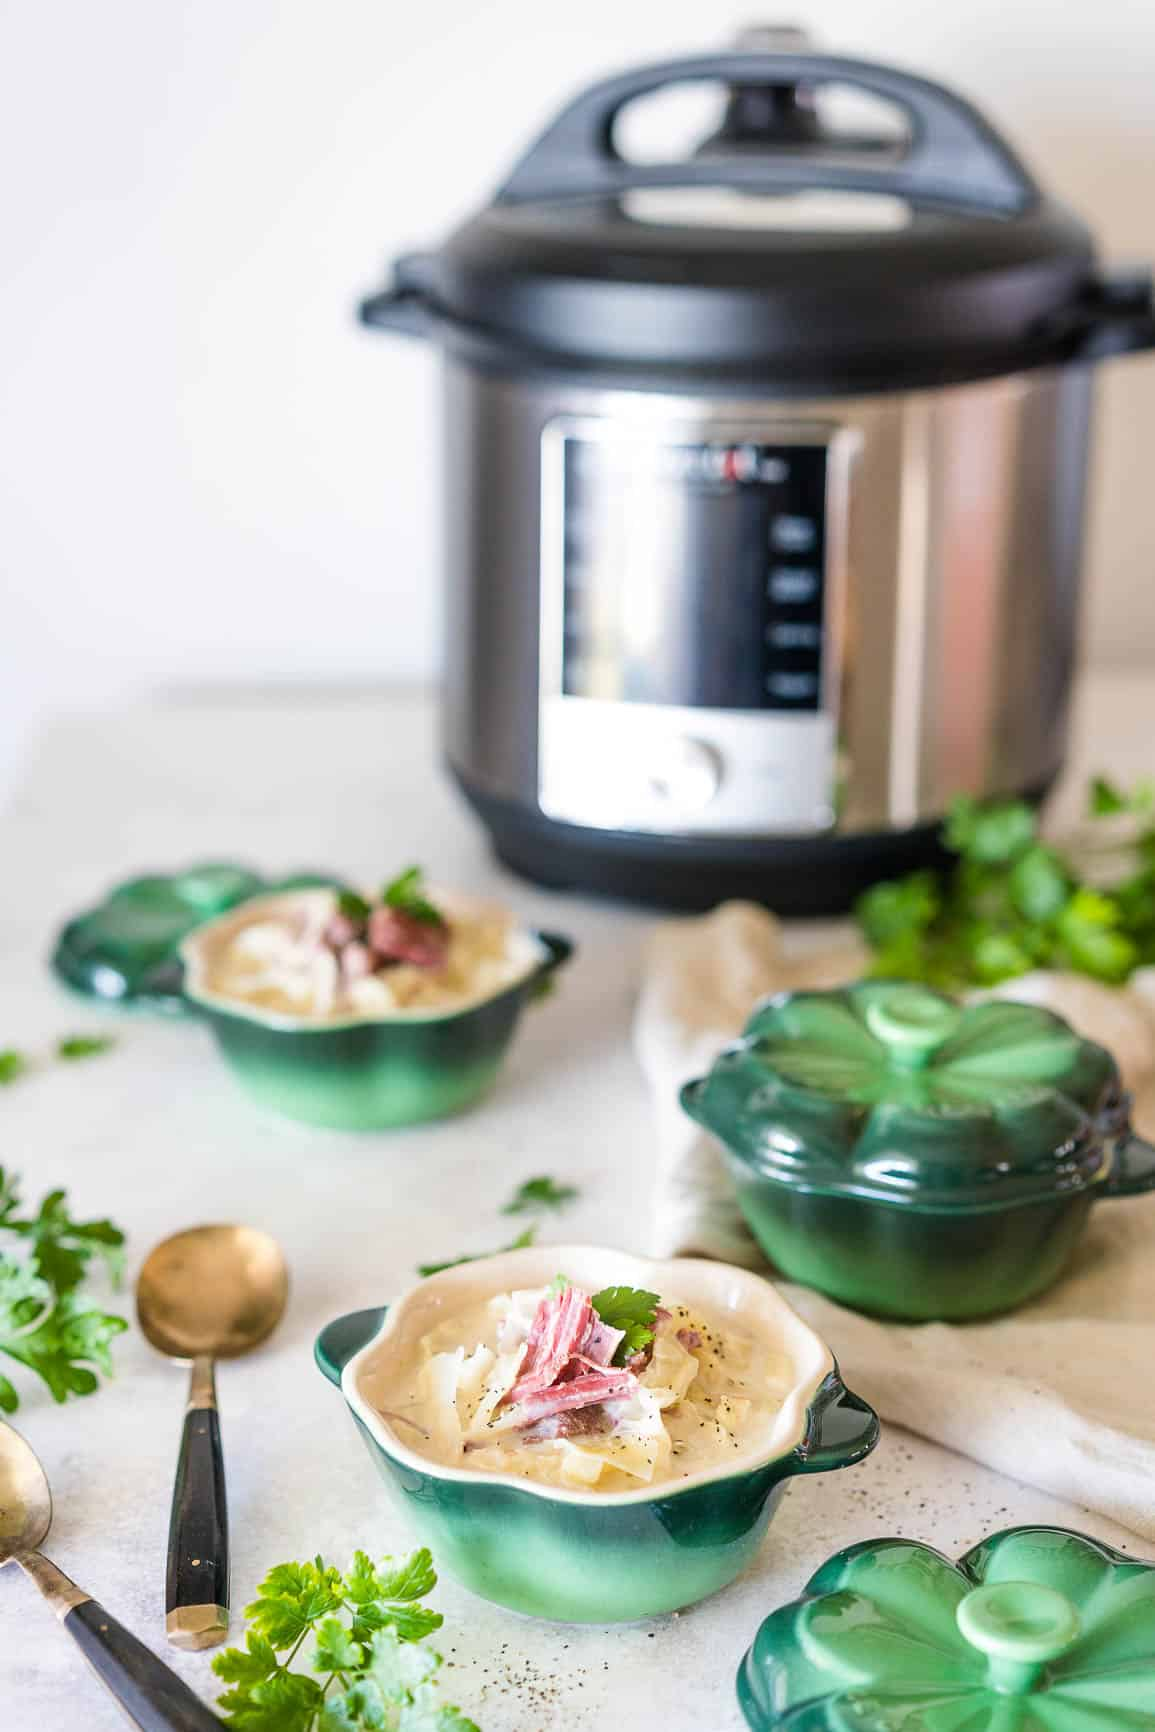 My Keto Creamy Corned Beef Soup is chock full of corned beef and cabbage flavor, swimming in a bowl of creamy deliciousness. Made quickly in your Instant Pot or pressure cooker, that's low-carb, gluten-free & grain-free!